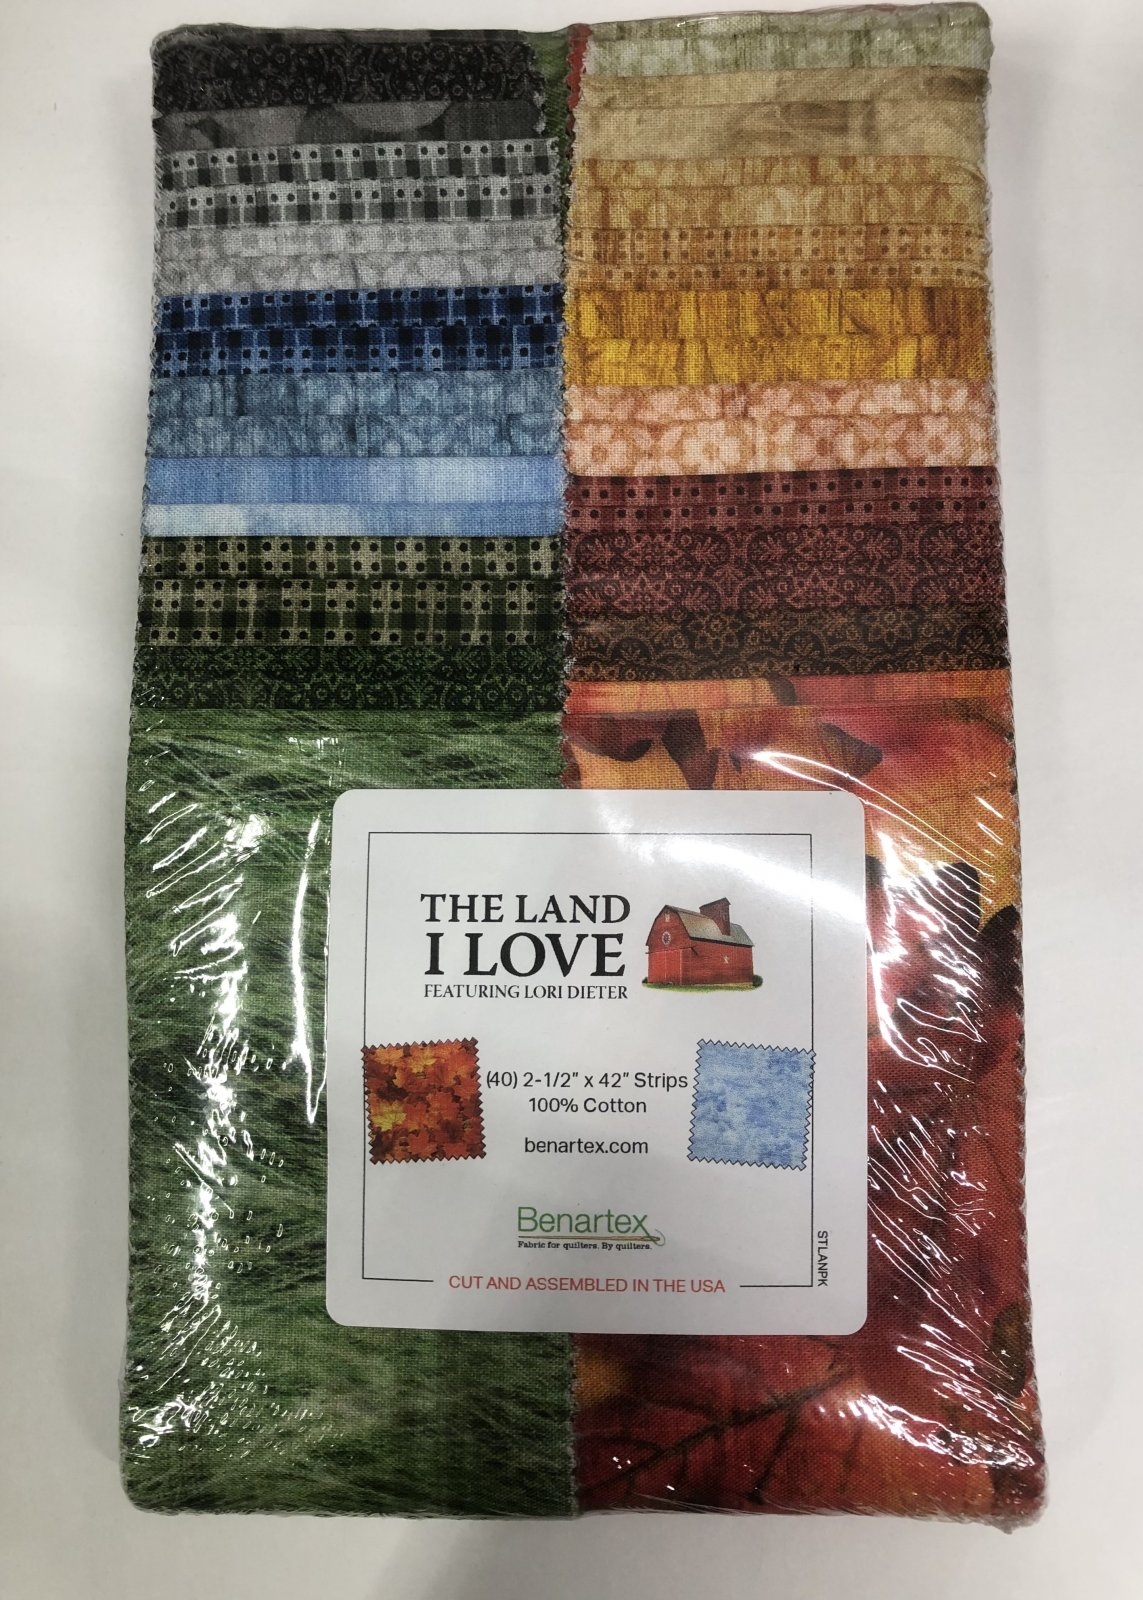 2.5 inch STRIPS:  The Land I Love by Benartex - 40 piece 2.5 inch Fabric Strips Flat Pack